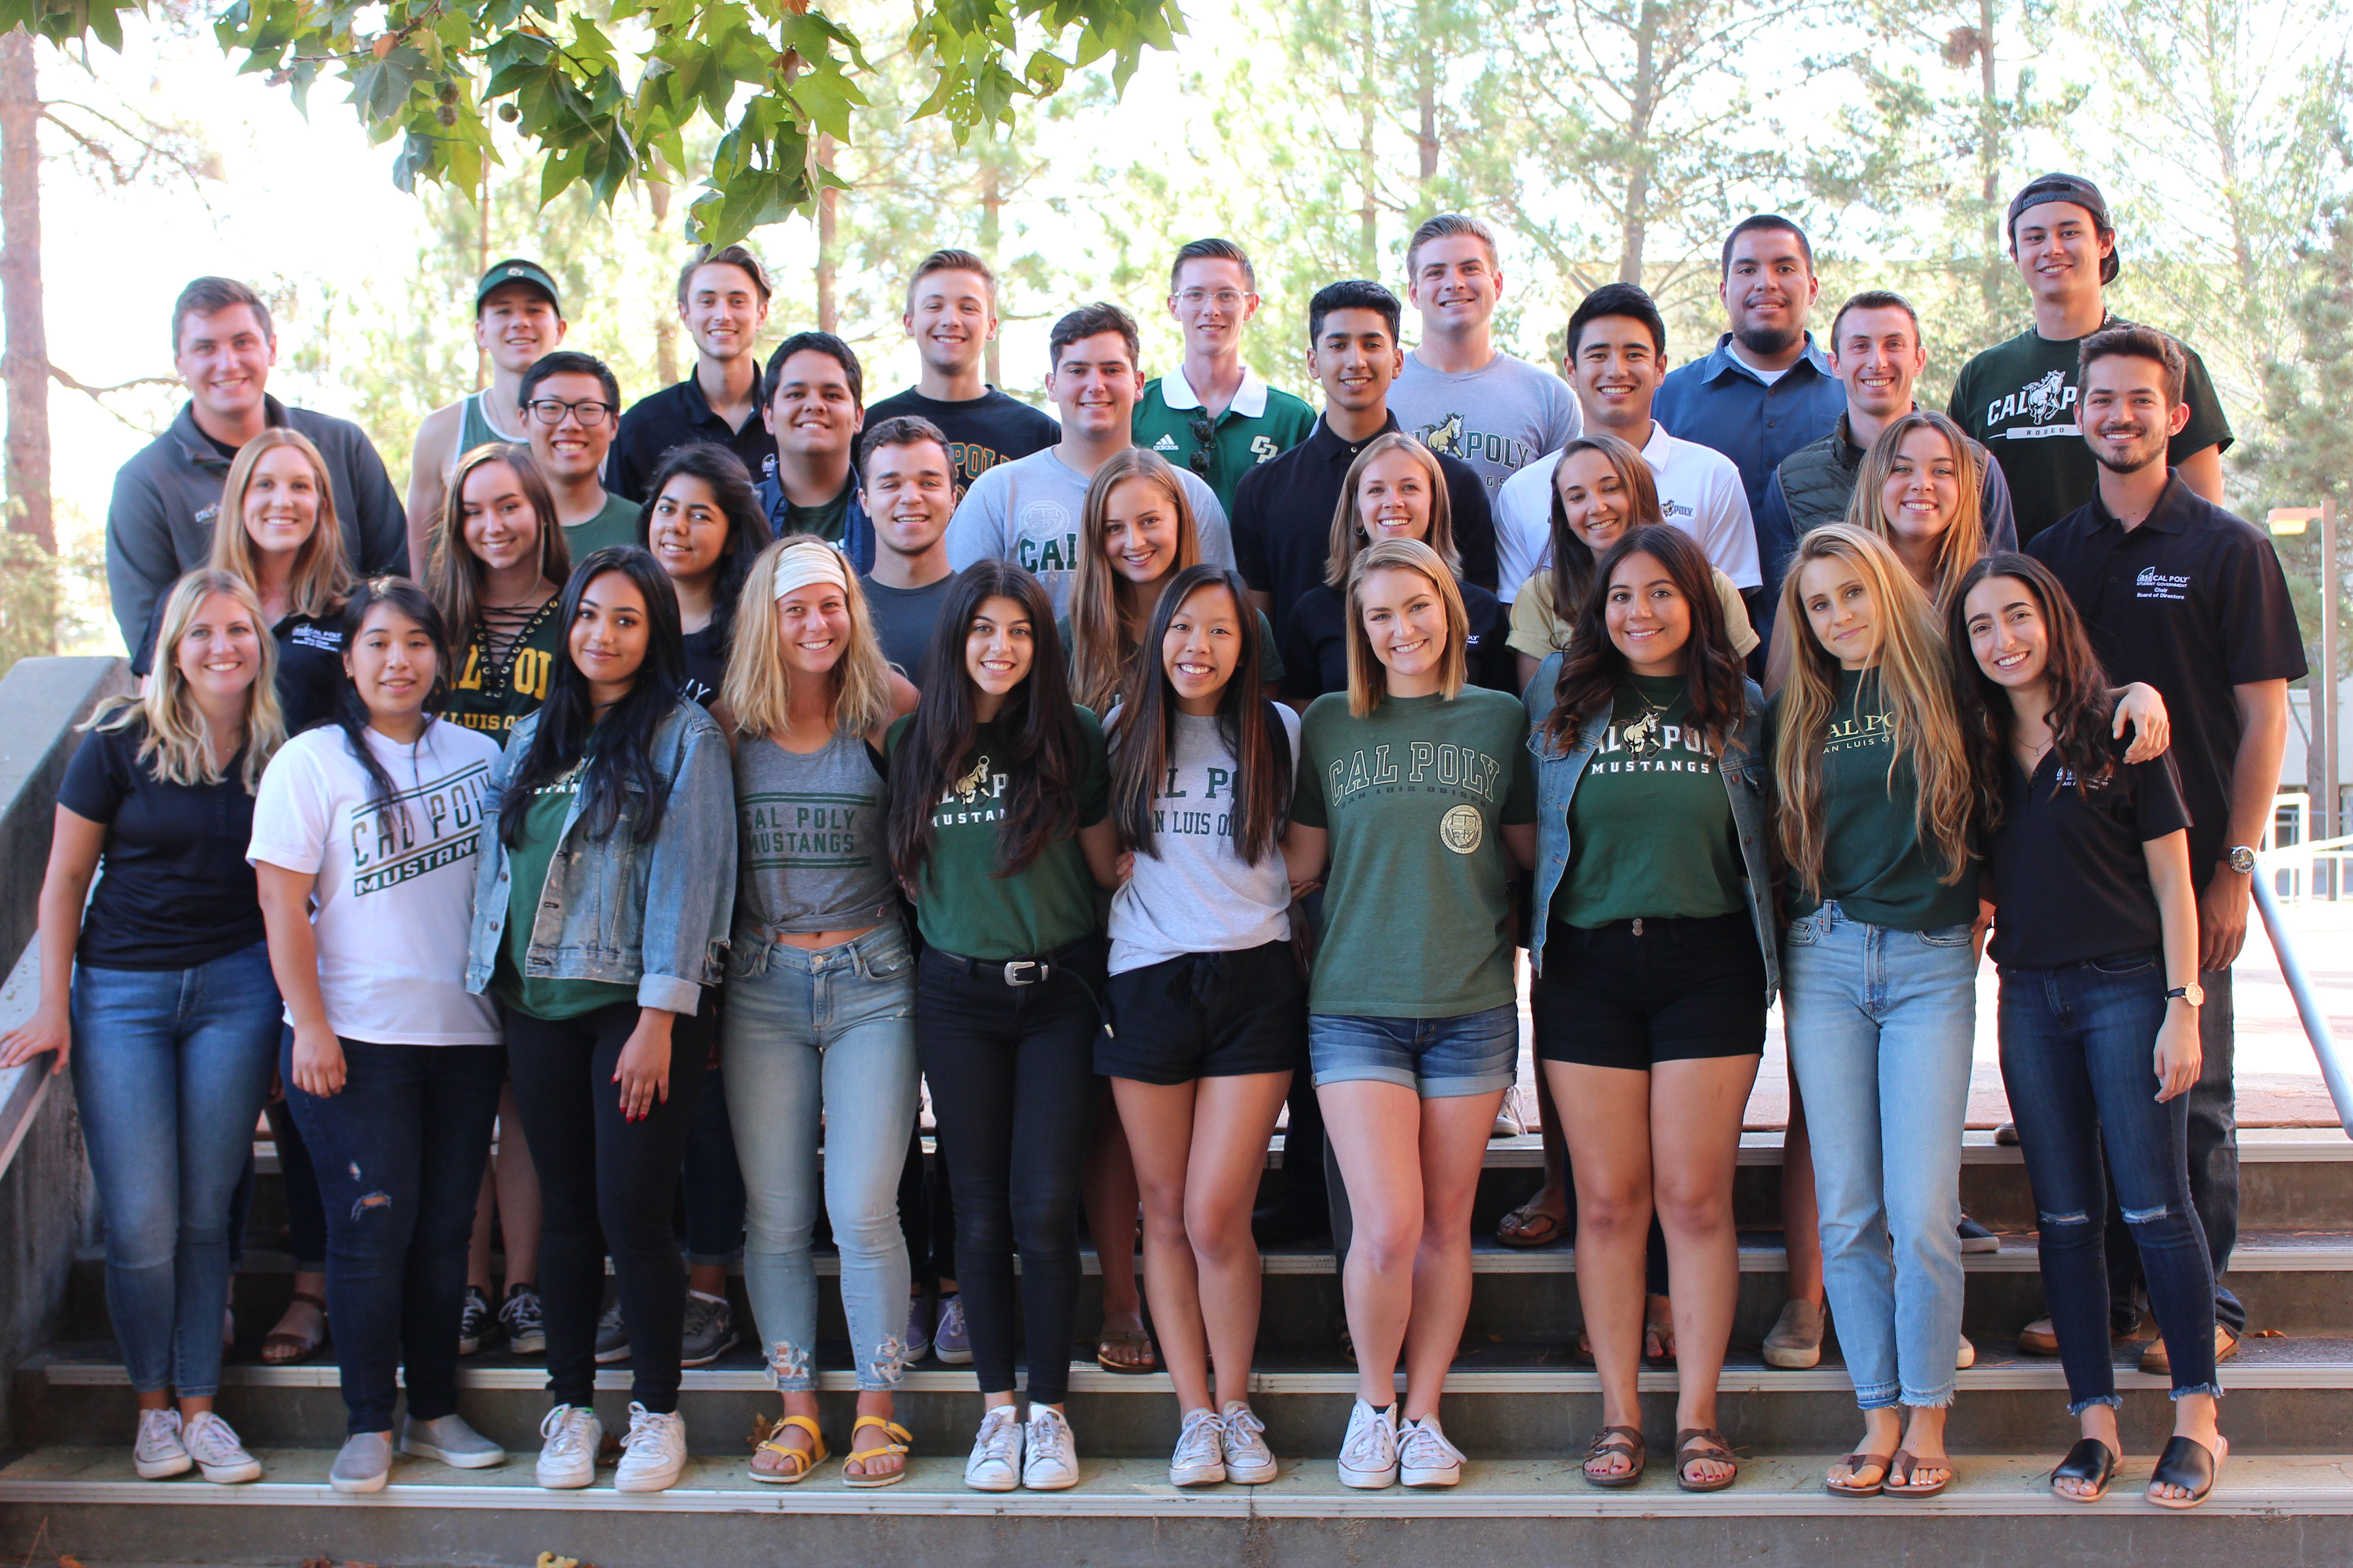 A group of Student Government members wearing a variety of Cal Poly shirts stand smiling on steps